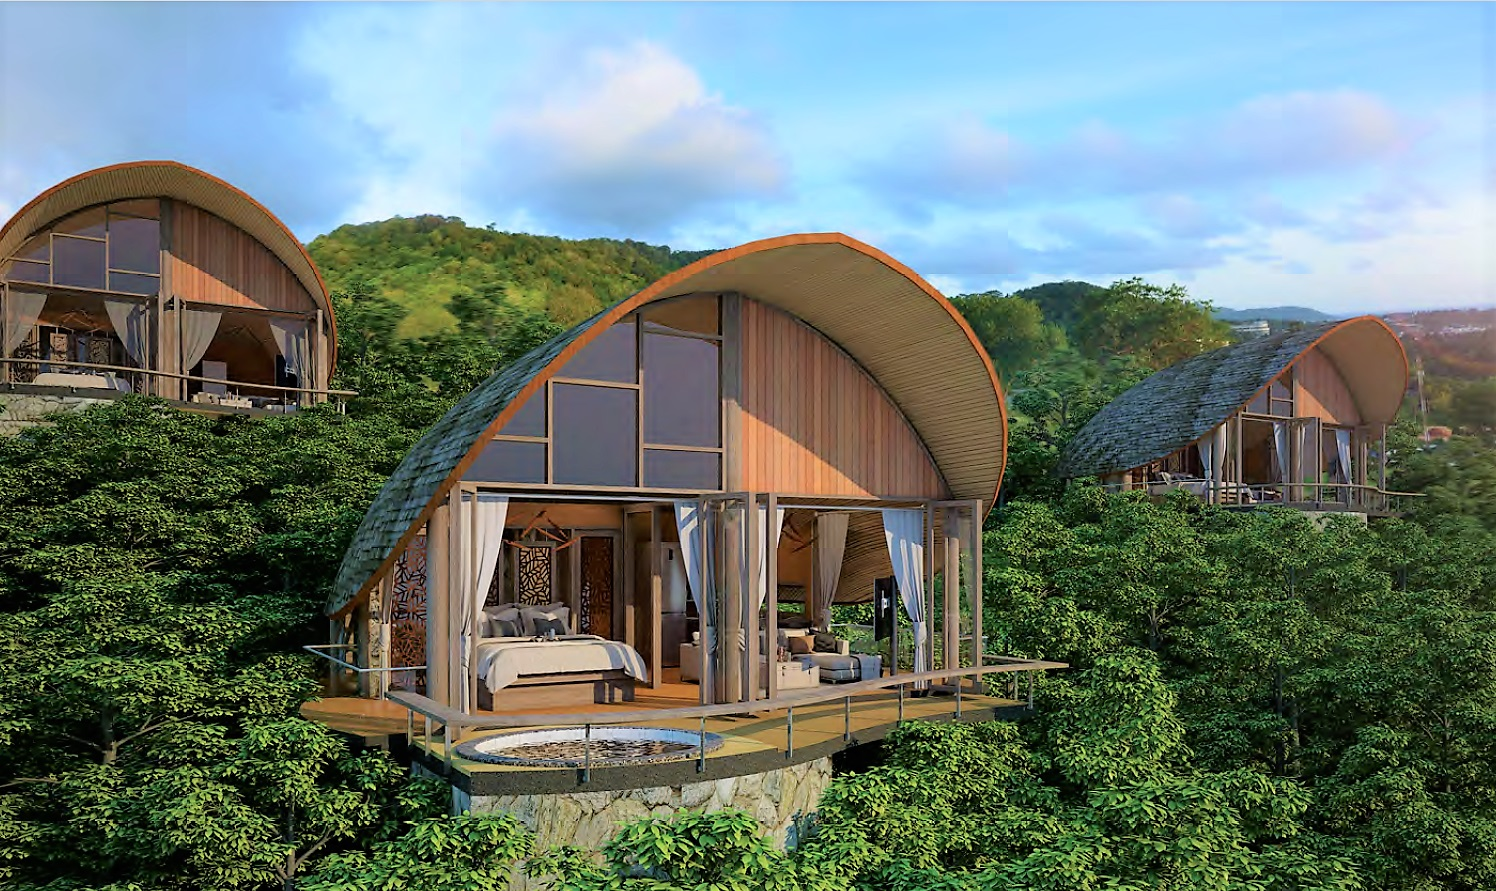 Patong Bay Ocean View Cottages - 7% Return Guaranteed for 15 Years - Best Investment